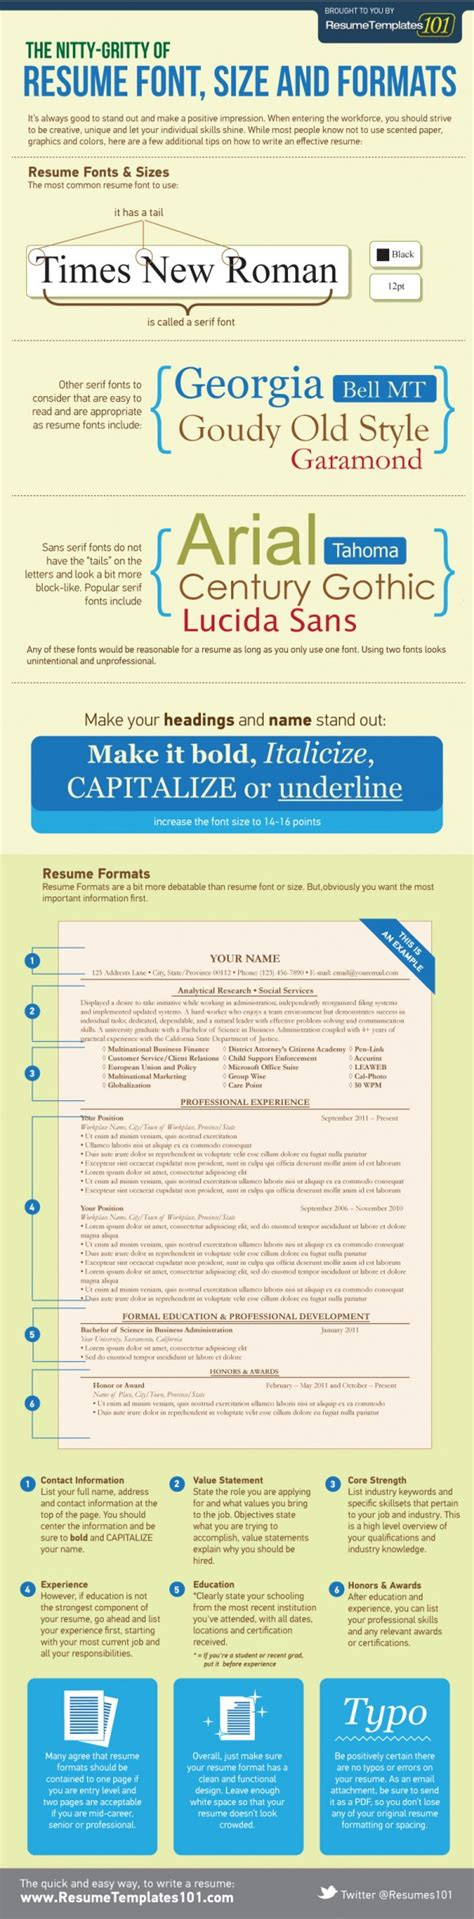 best cv font size and format for a successful application infographic